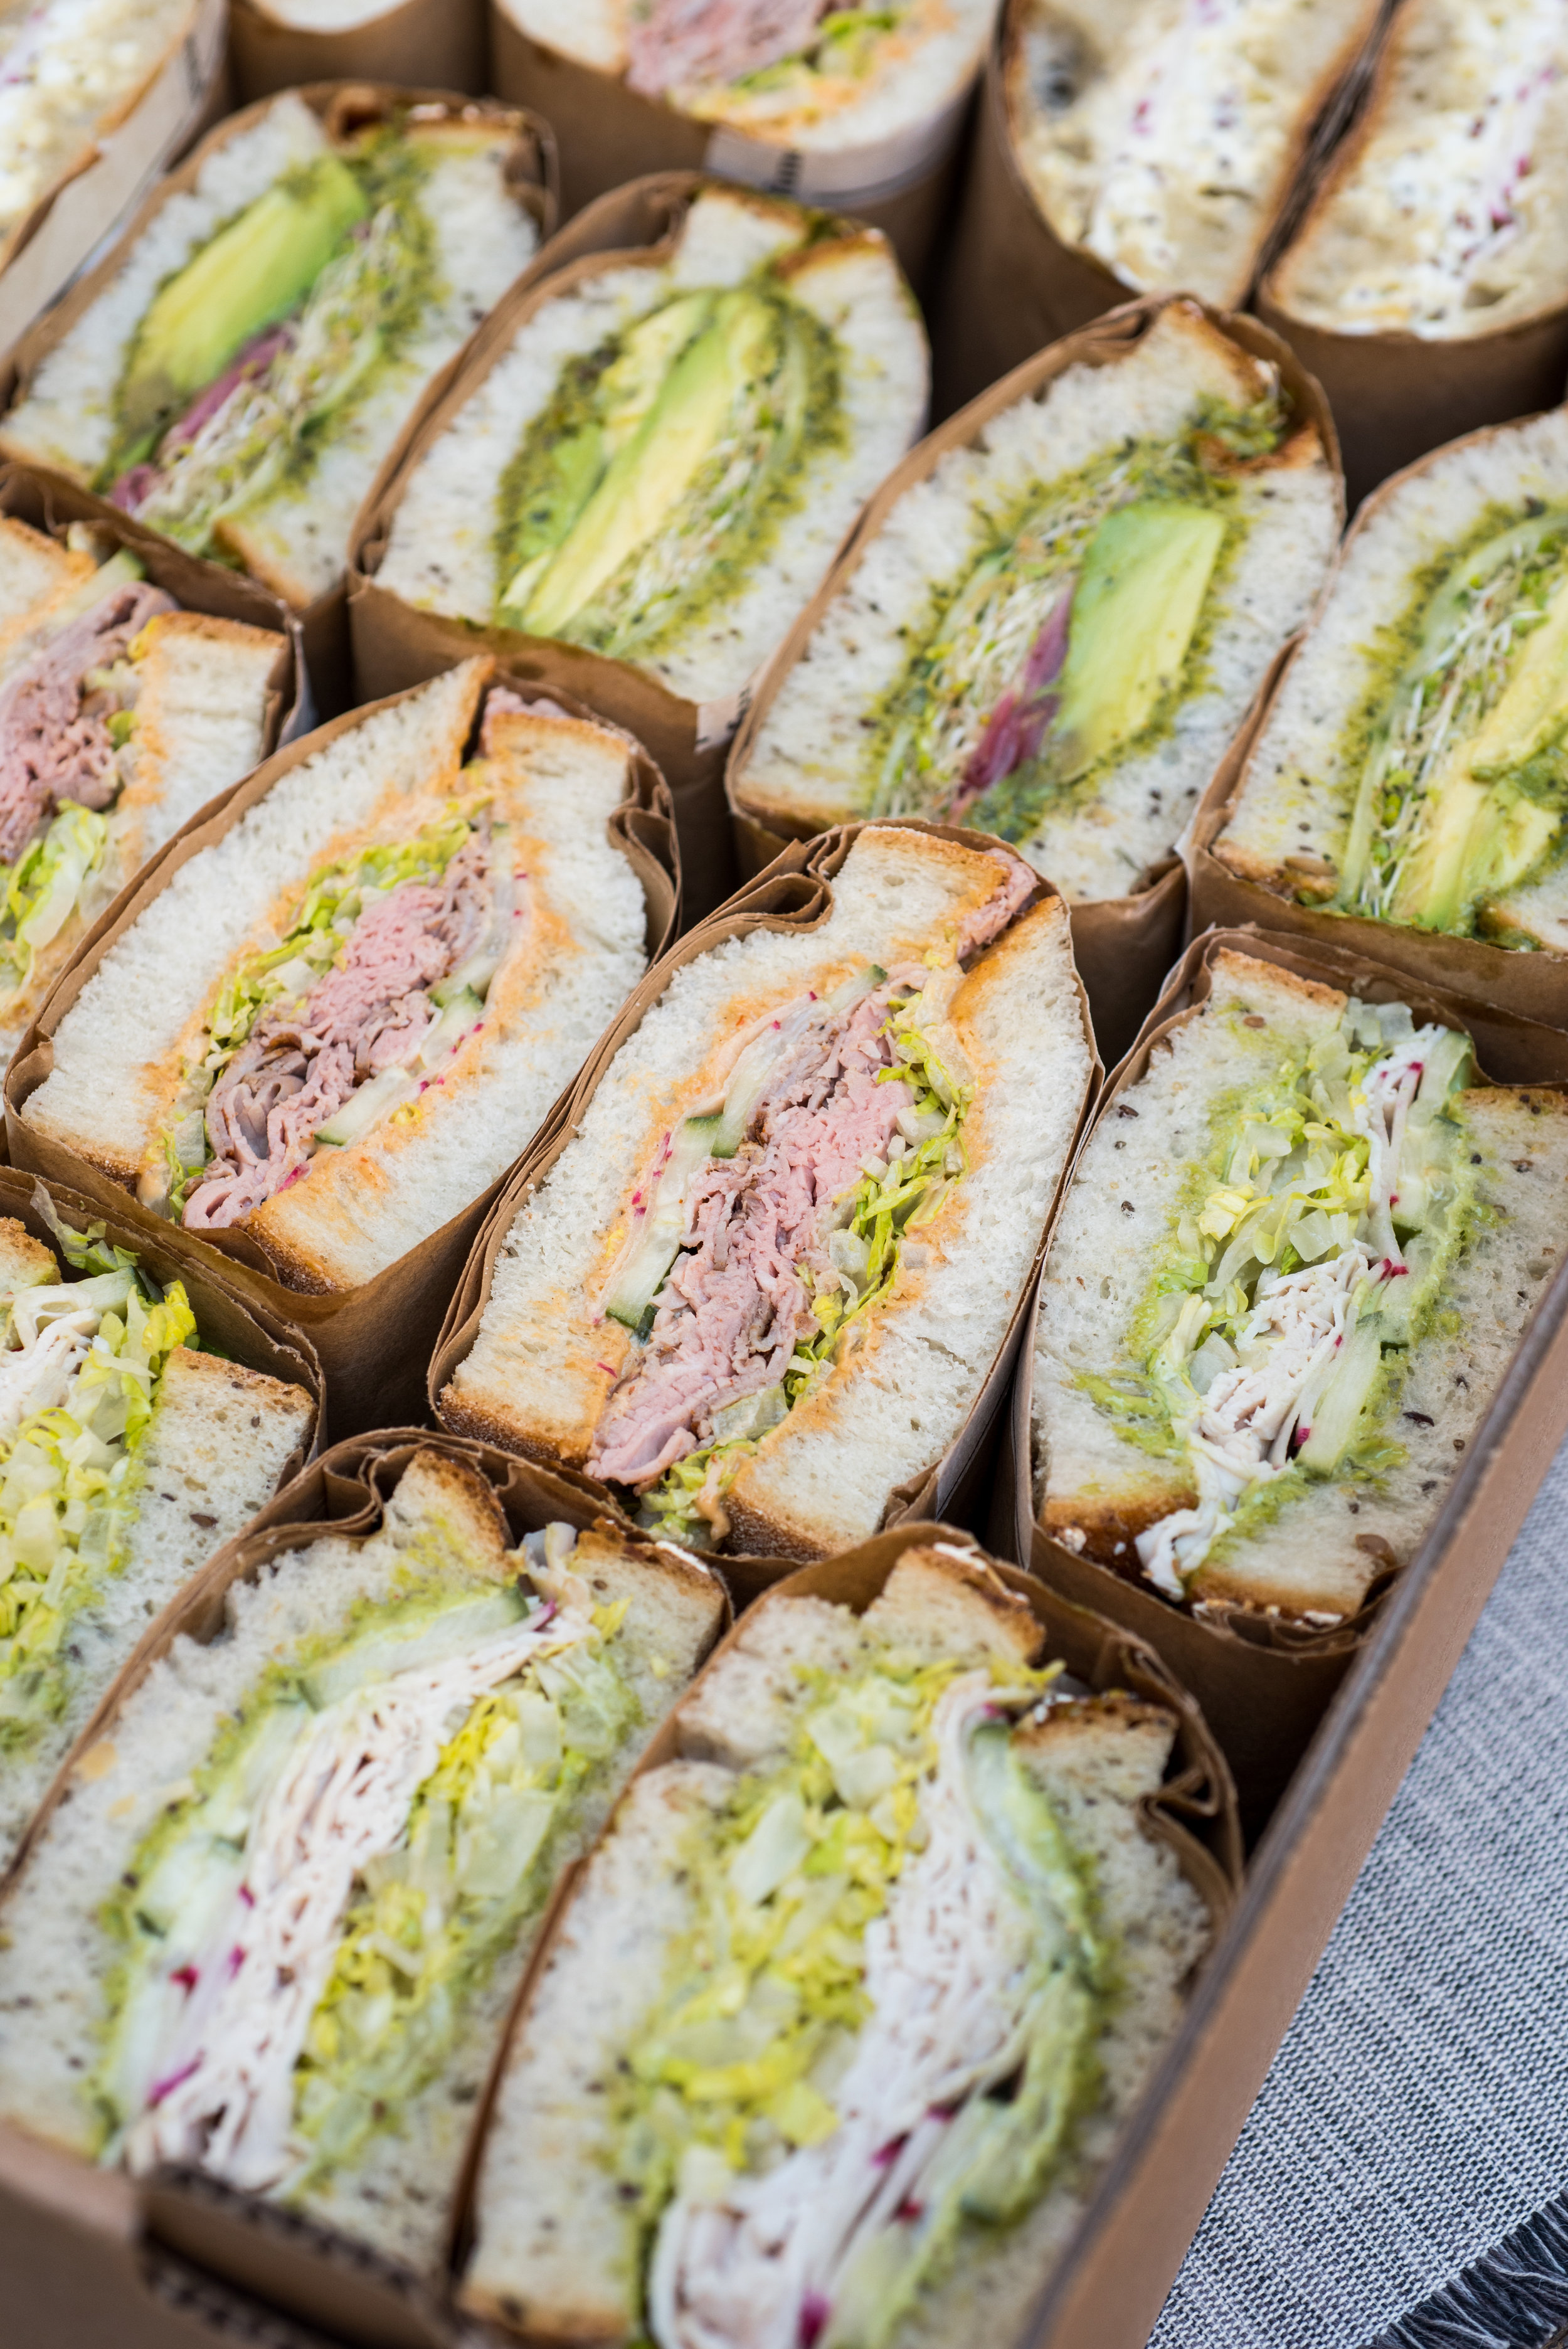 sandwiches - catering.jpg